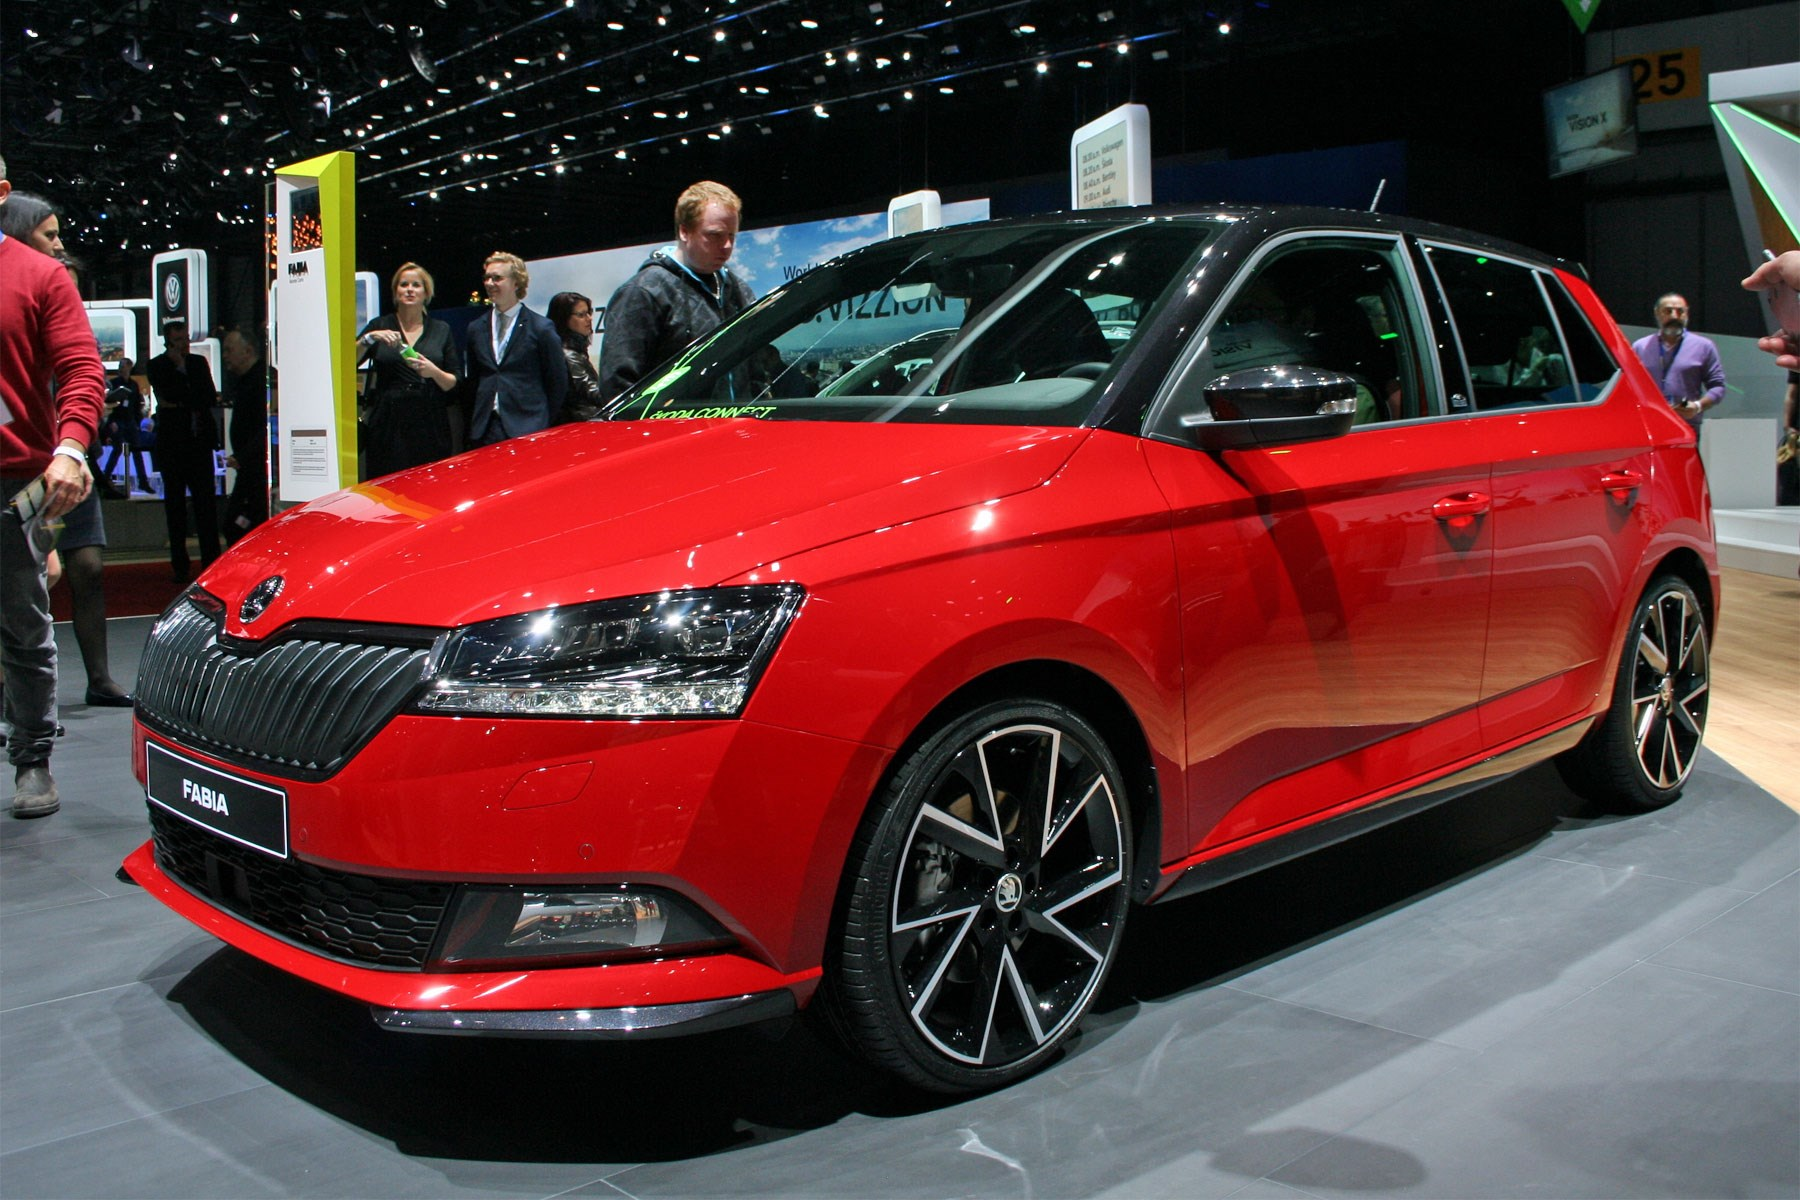 Skoda Rapid 2019 >> Skoda Fabia hatchback (2018) facelift: price, specs and interior | CAR Magazine